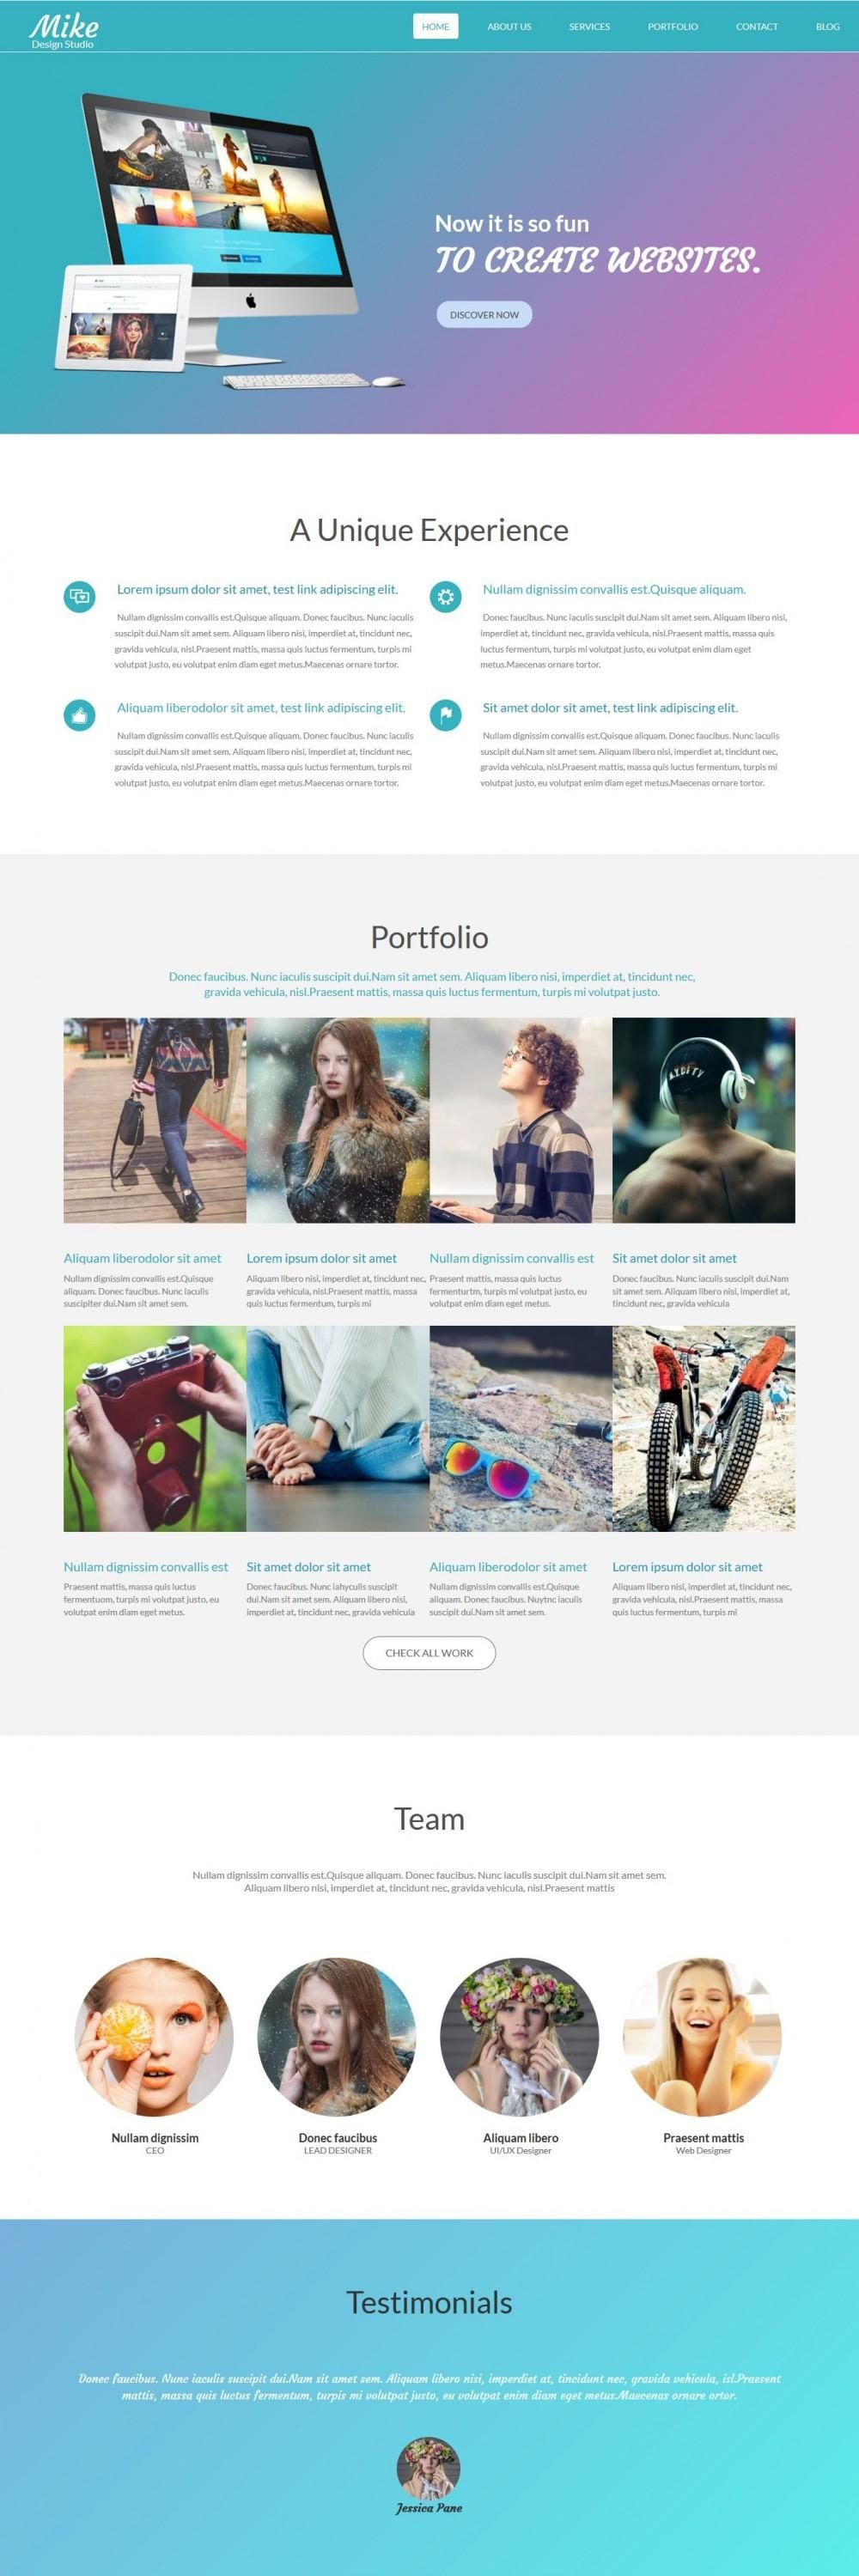 Mike – Creative Web Design Studio Drupal Theme